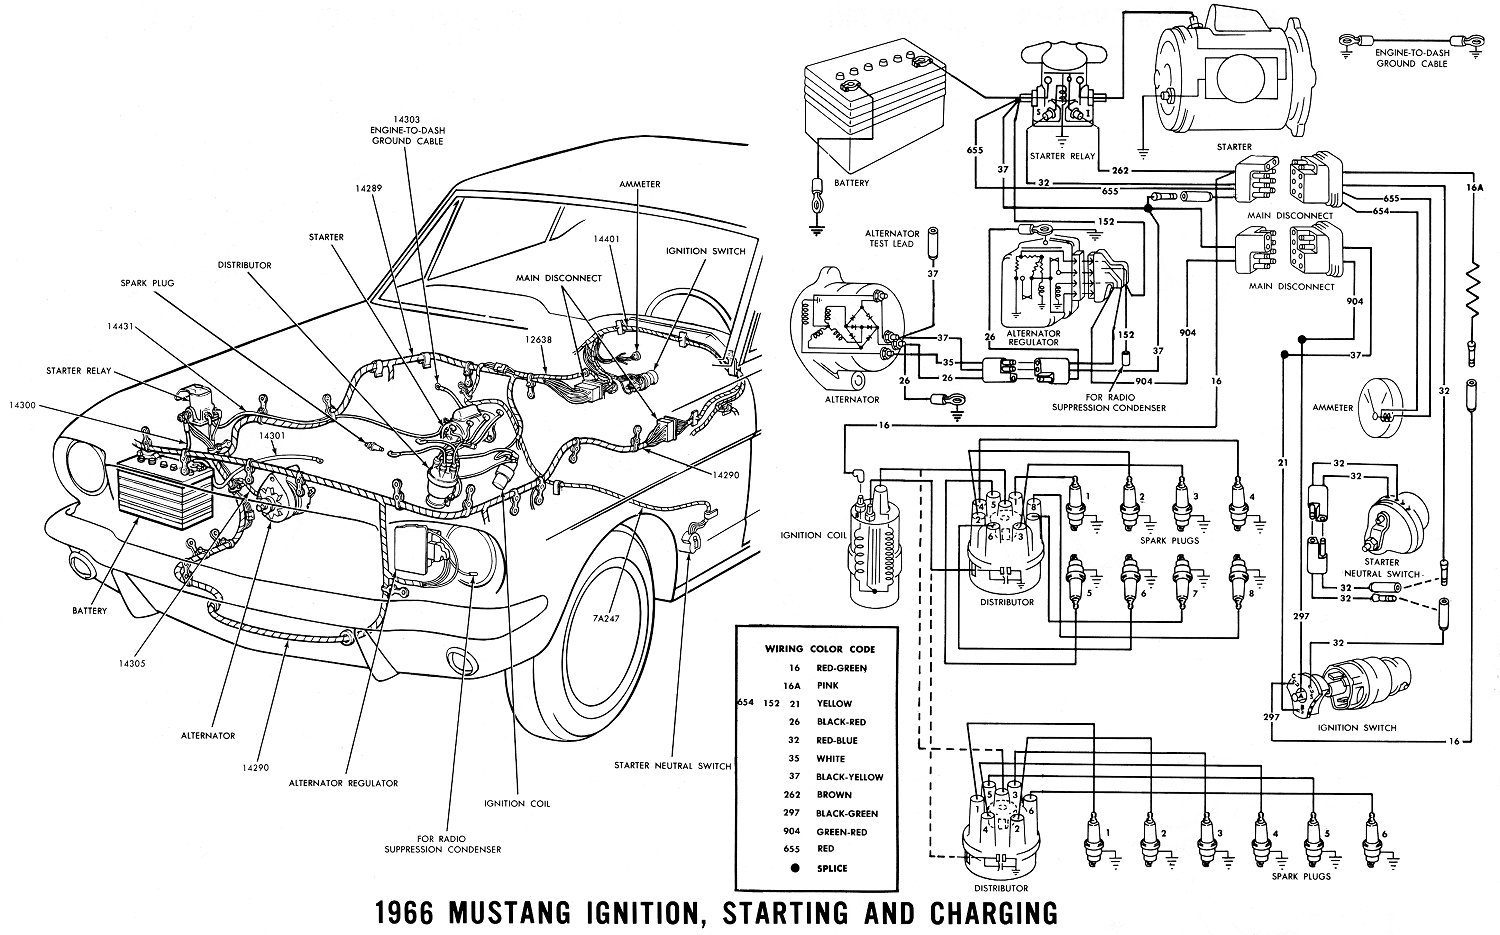 83 Mustang 302 Wiring Diagram : 29 Wiring Diagram Images